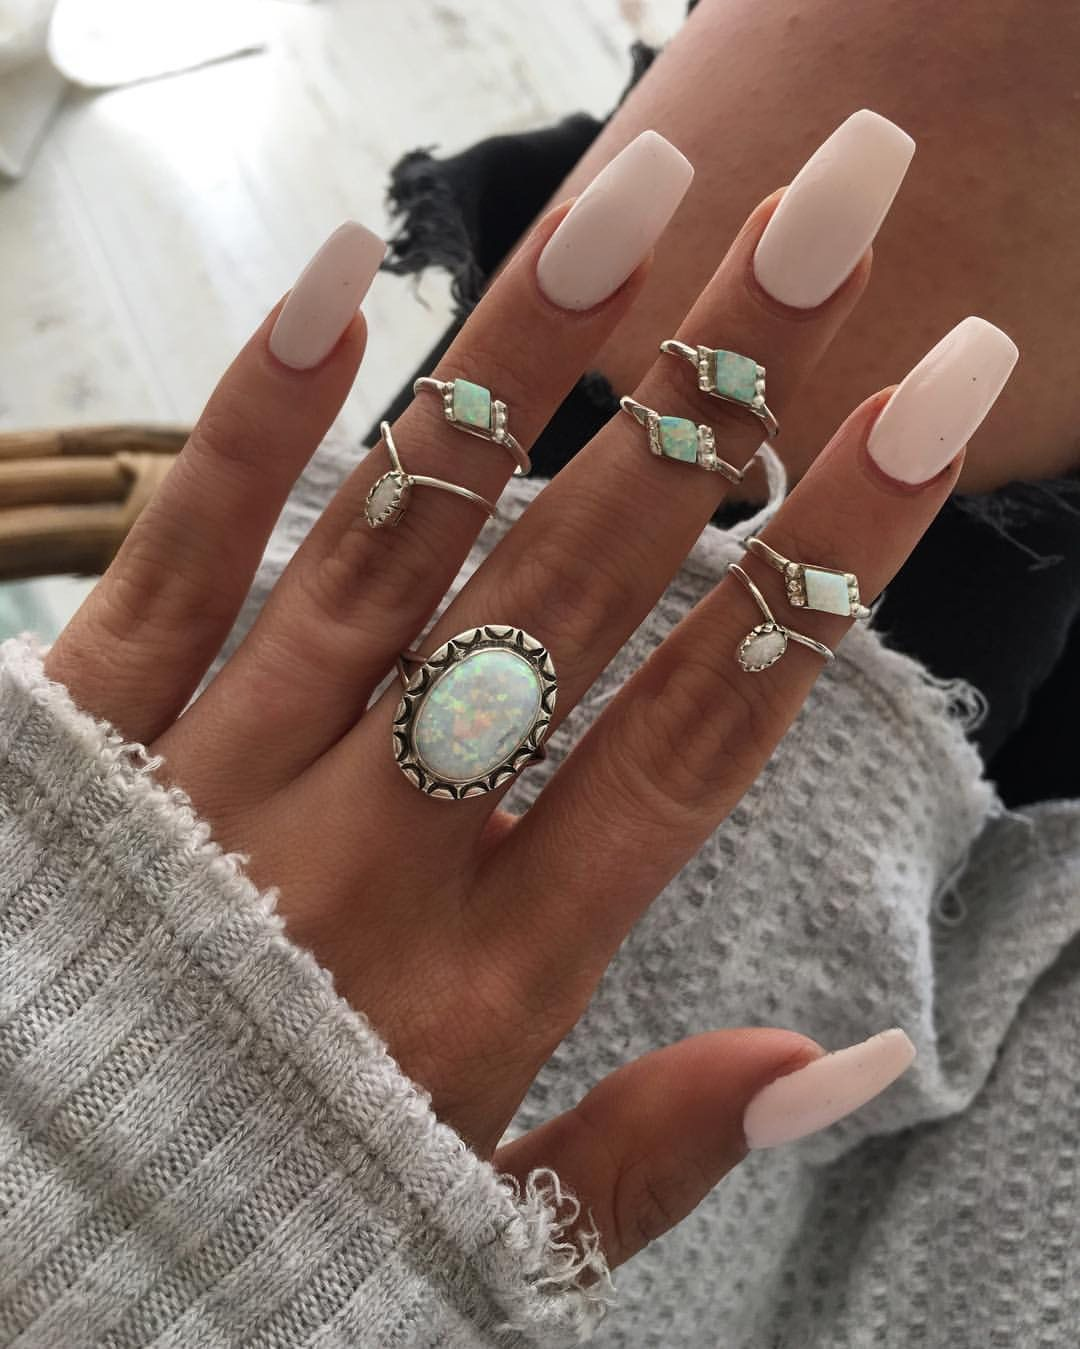 Midnight Opal Ring Nails Nude Nails Pretty Nails